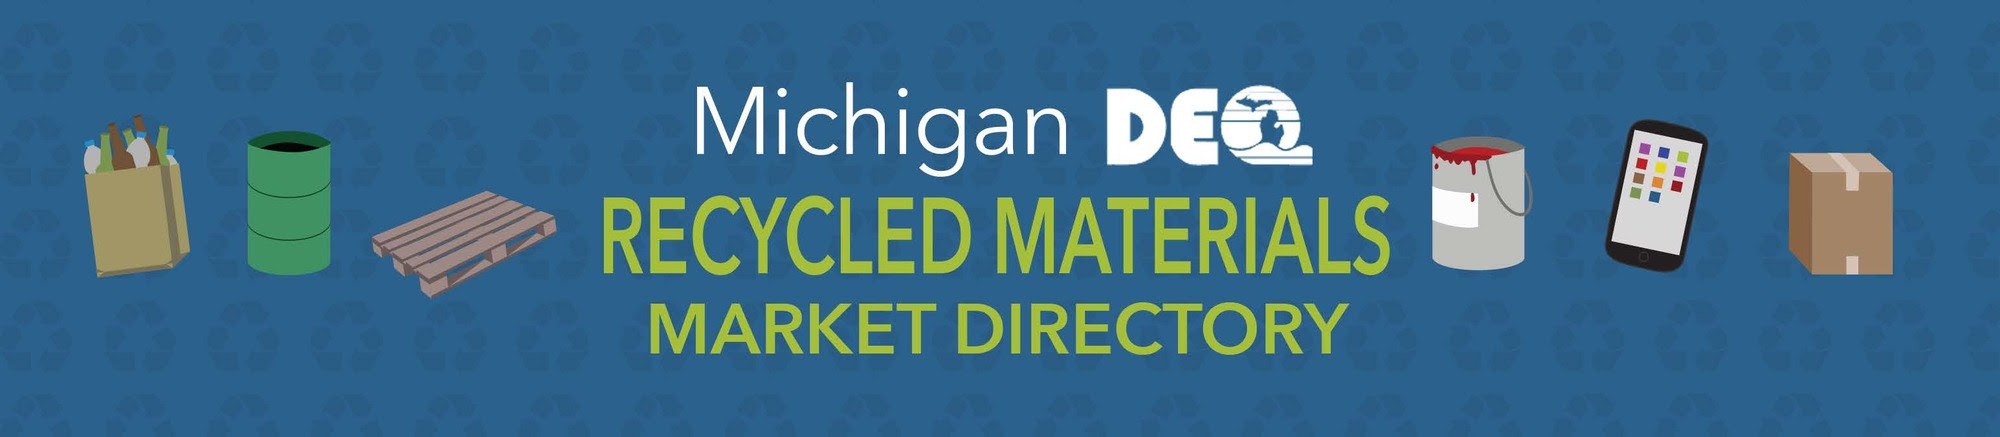 Recycled Materials Market Directory Banner